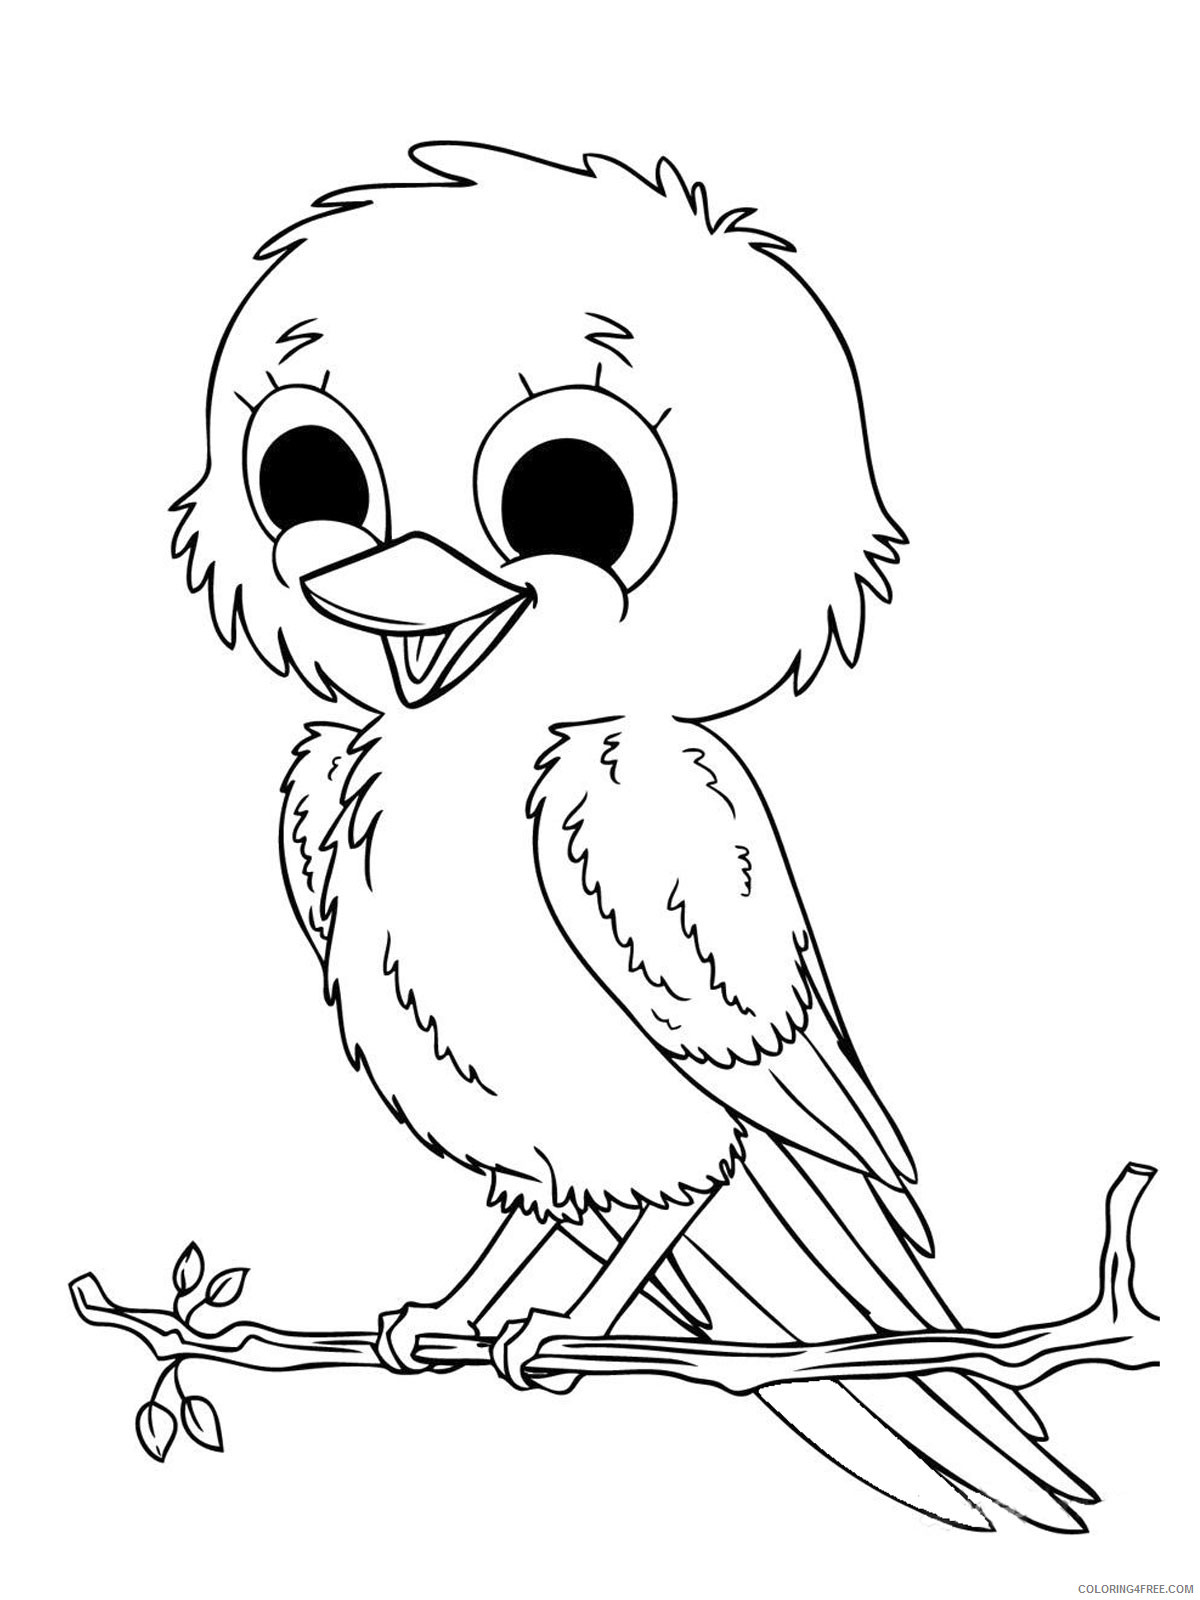 Baby Bird Coloring Pages cute little baby bird jpg Printable Coloring4free